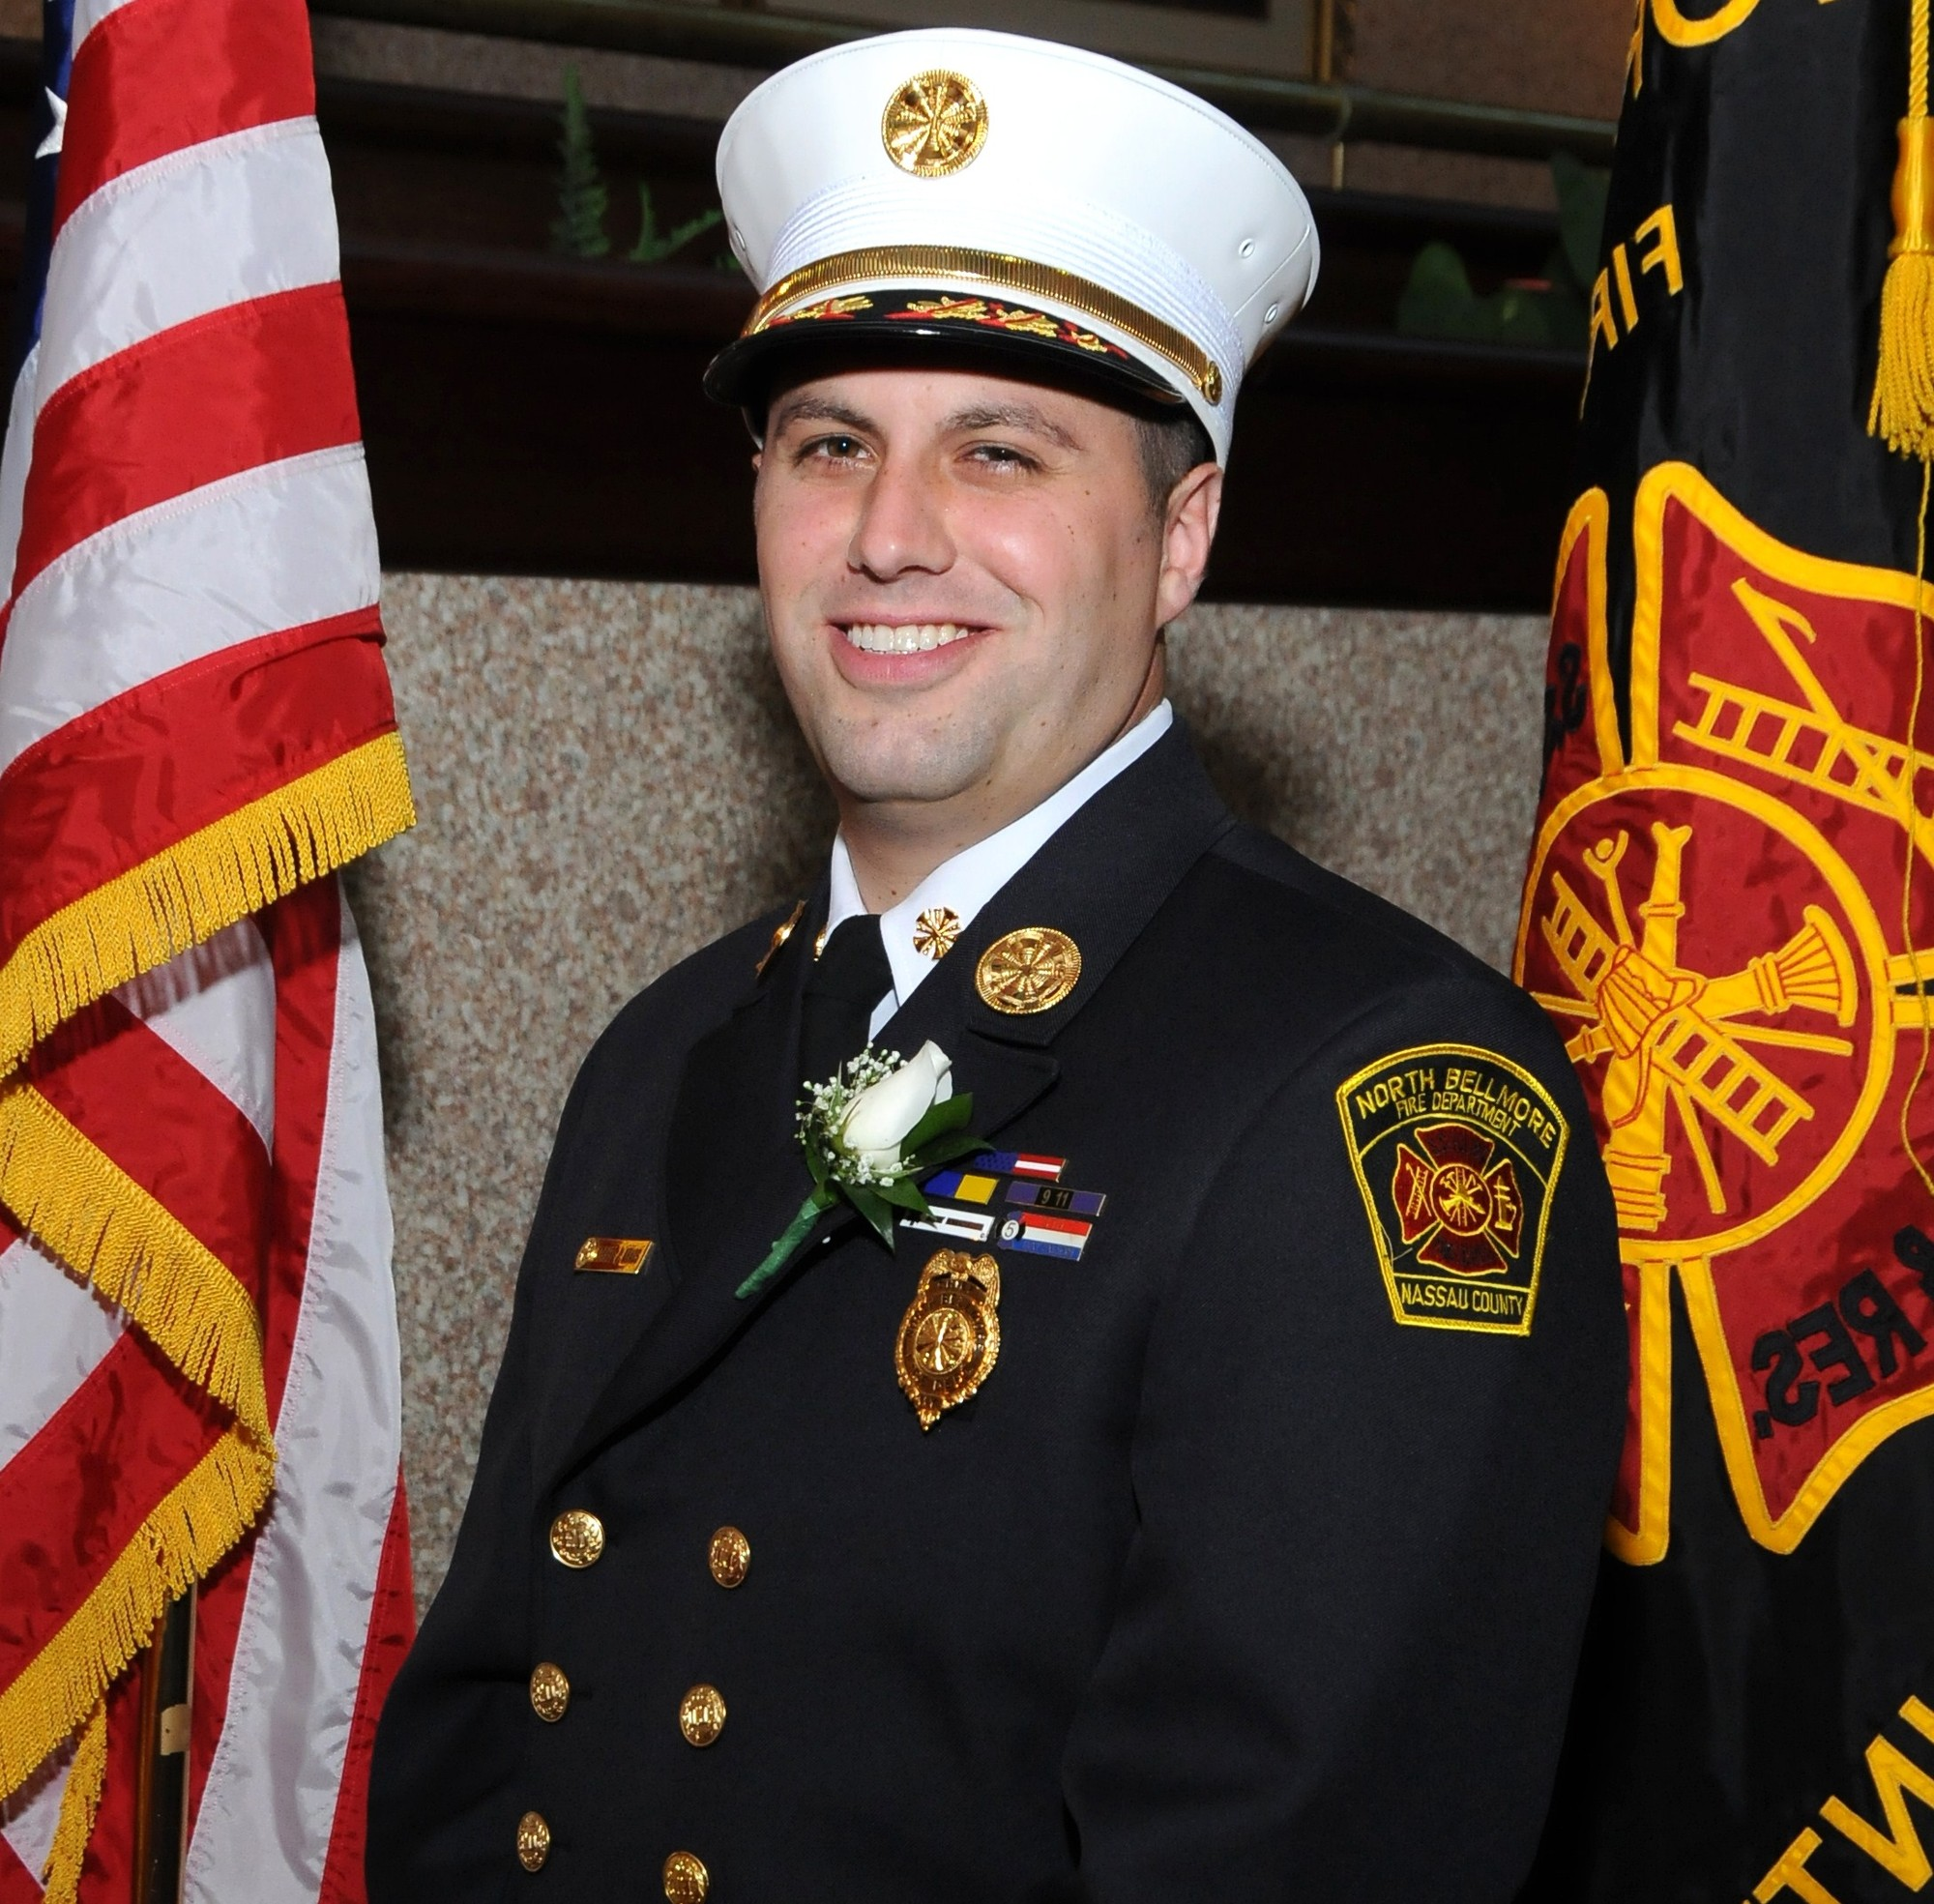 Age: 31